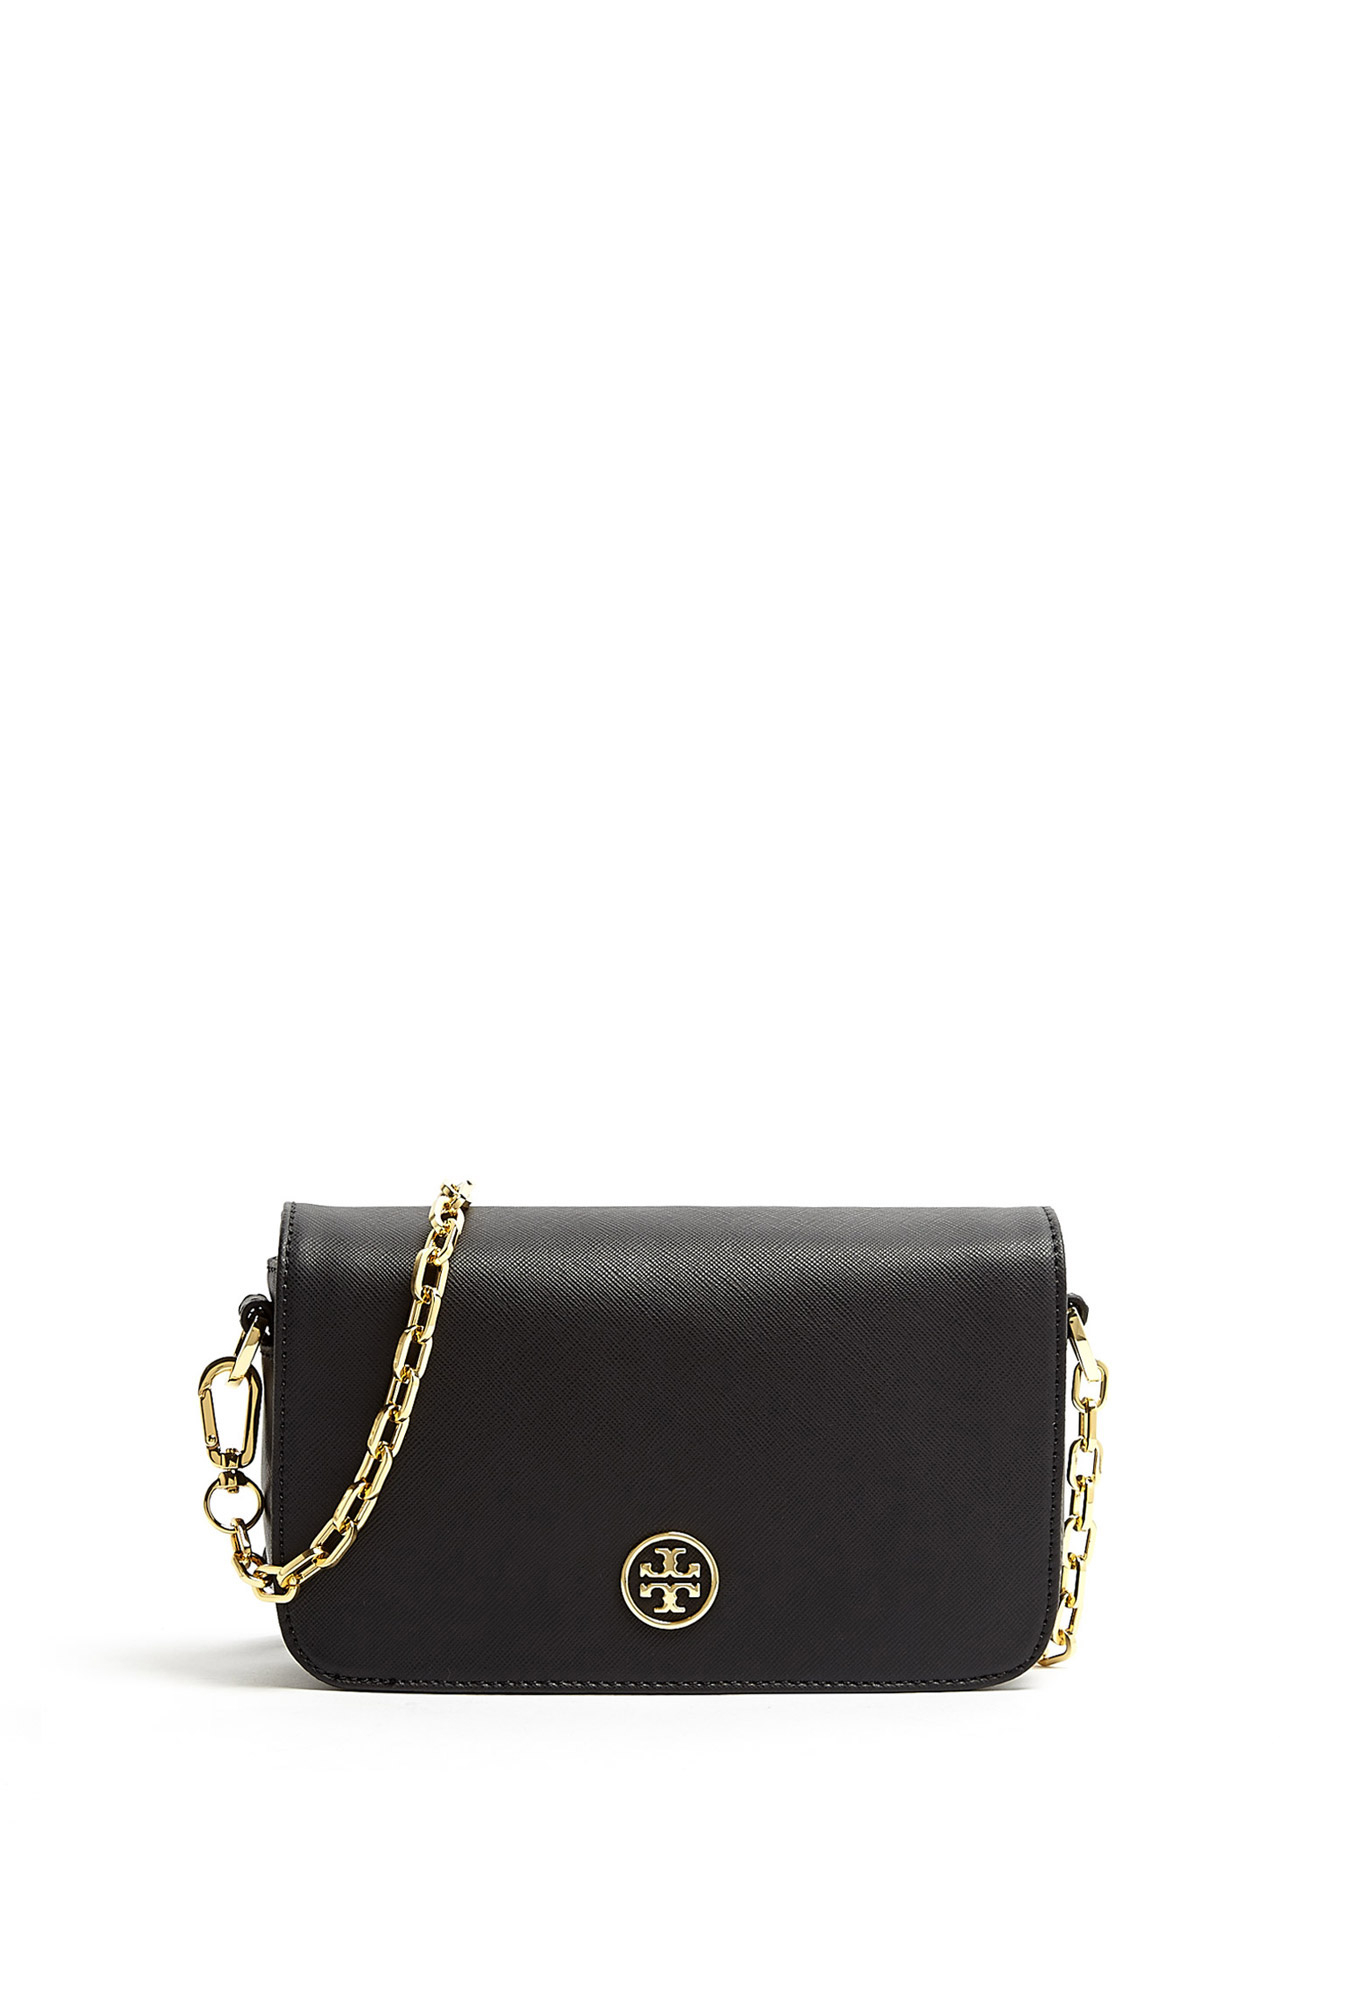 Visit Tory Burch to shop for Women's Clothing, Dresses, Designer Shoes, Handbags, Accessories & More. Enjoy Free Shipping & Returns on Every Order at bibresipa.ga